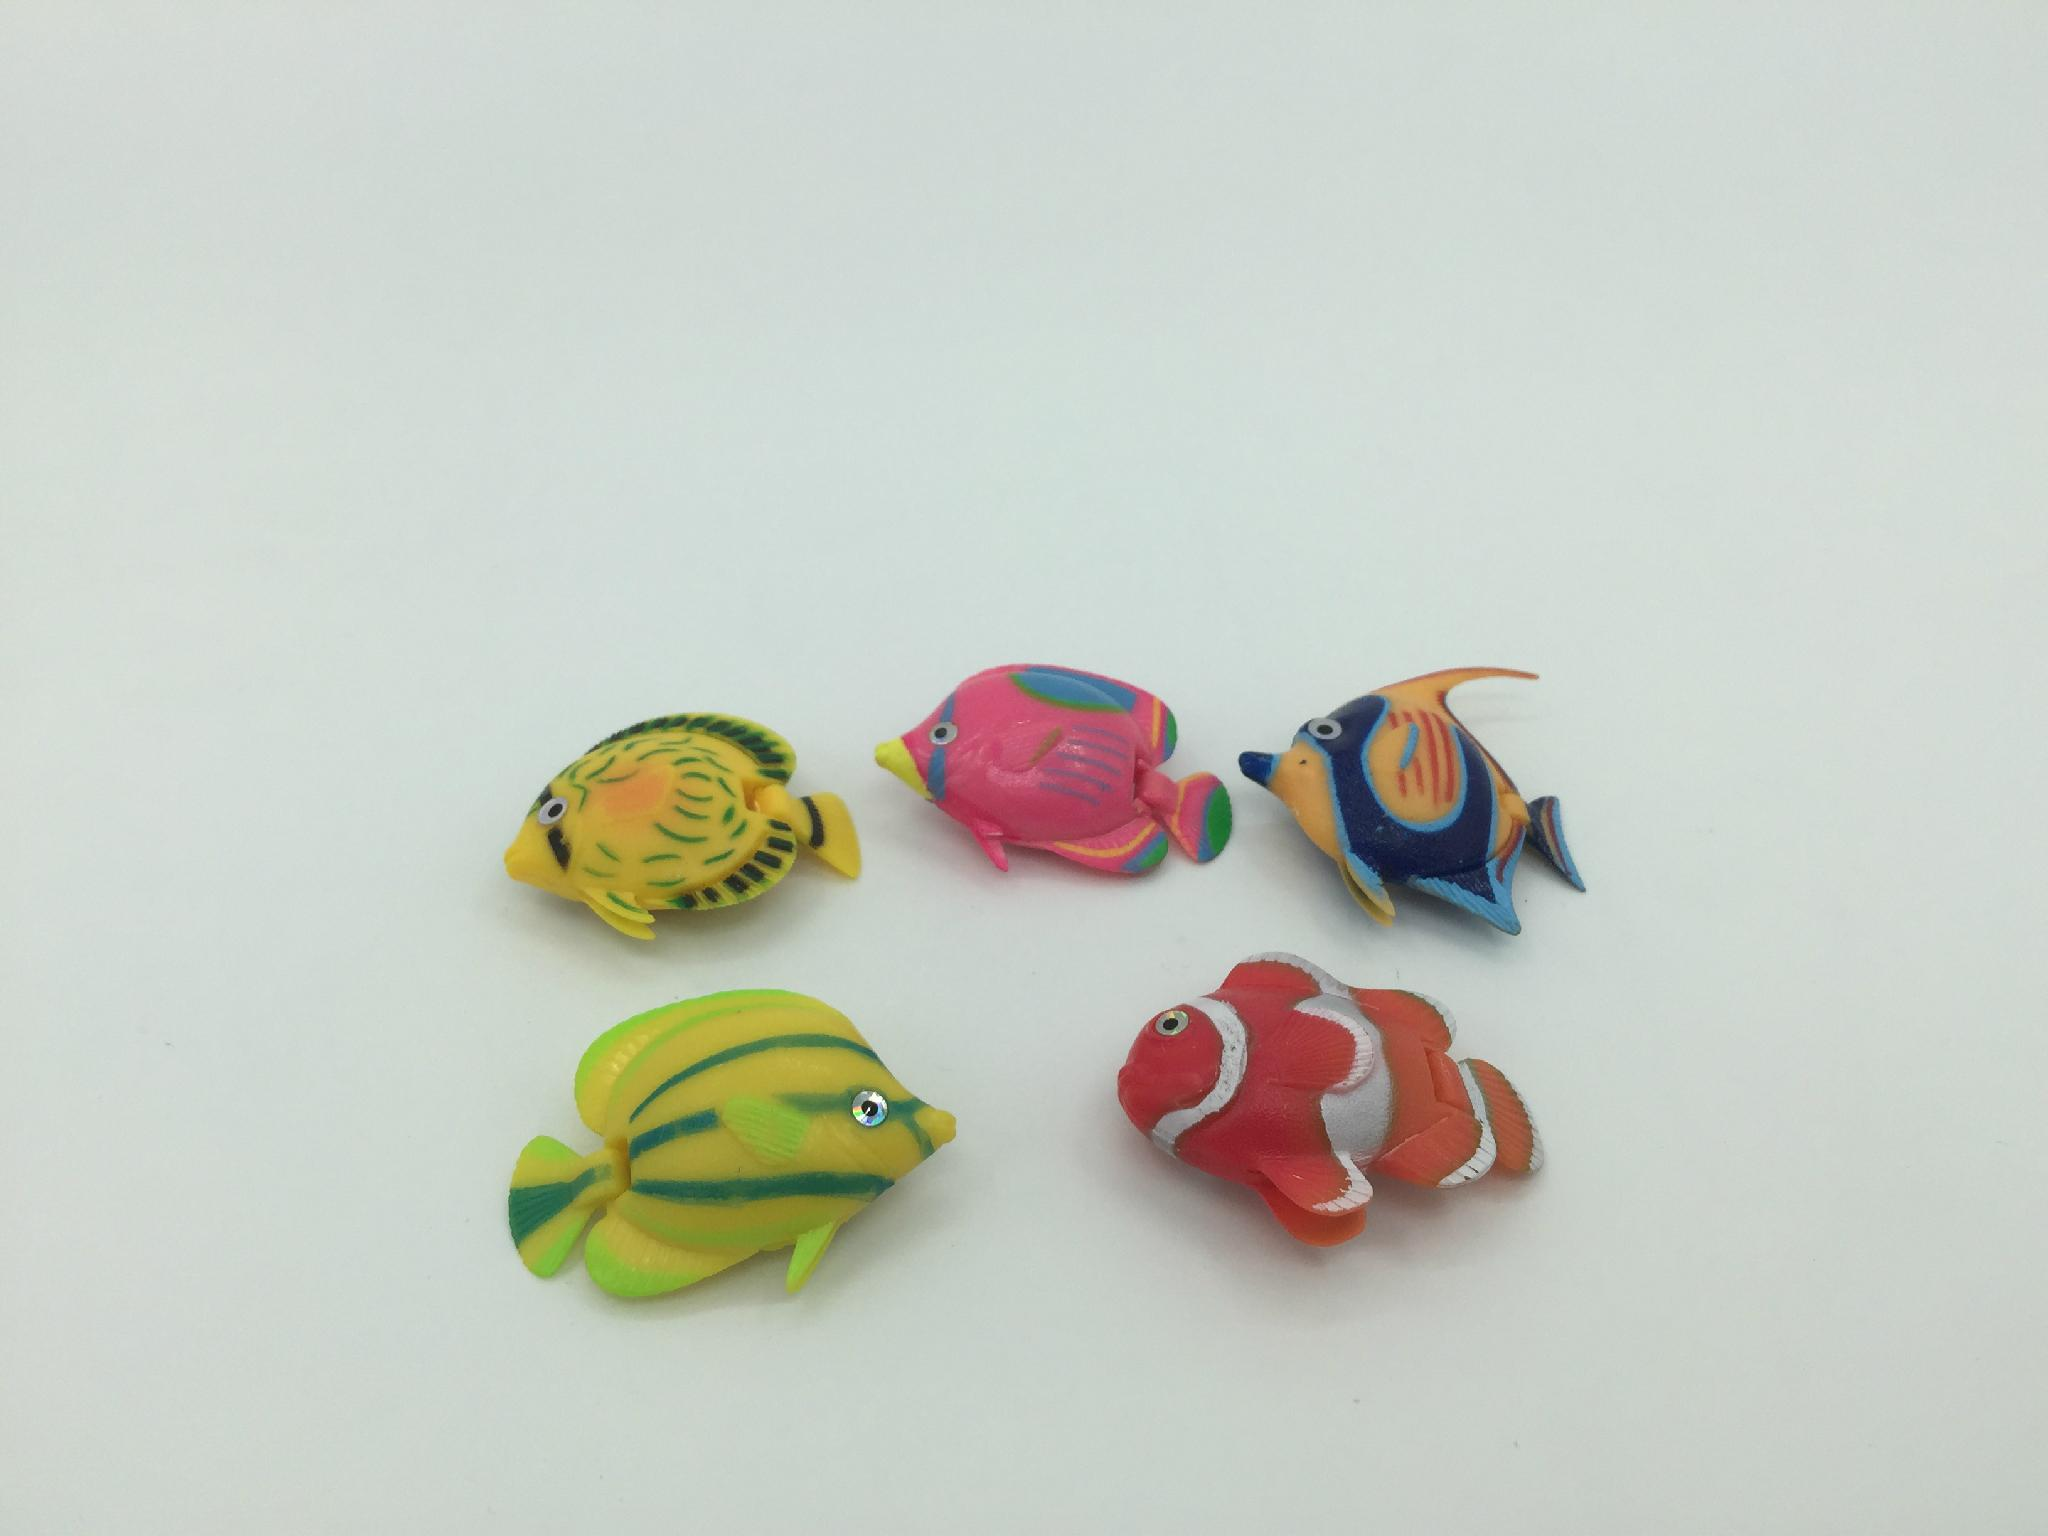 capsule toy-kinds of fishes figures 3